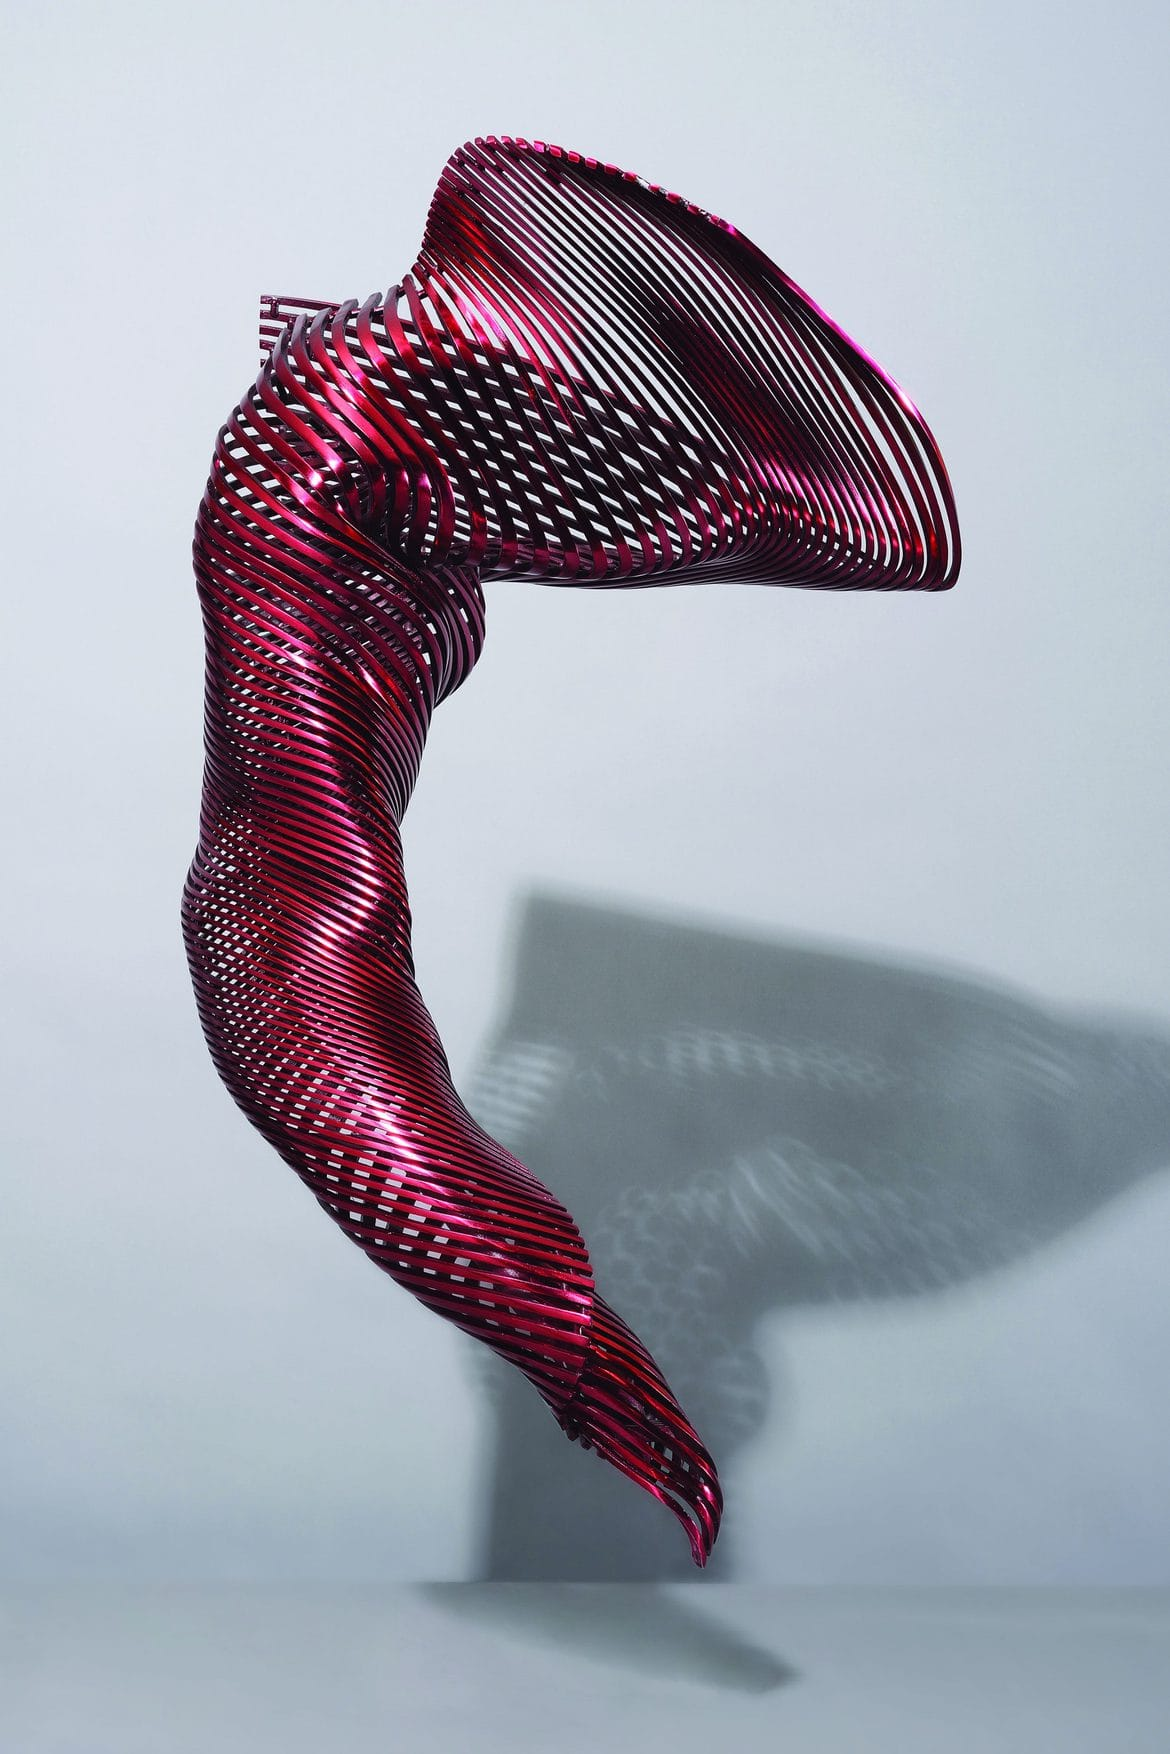 'I Am-Dancer', 2015, stainless steel, red polychrome, 100 x 41 x 56 cm, artist's proof,<br /> edition of 5 + 1AP